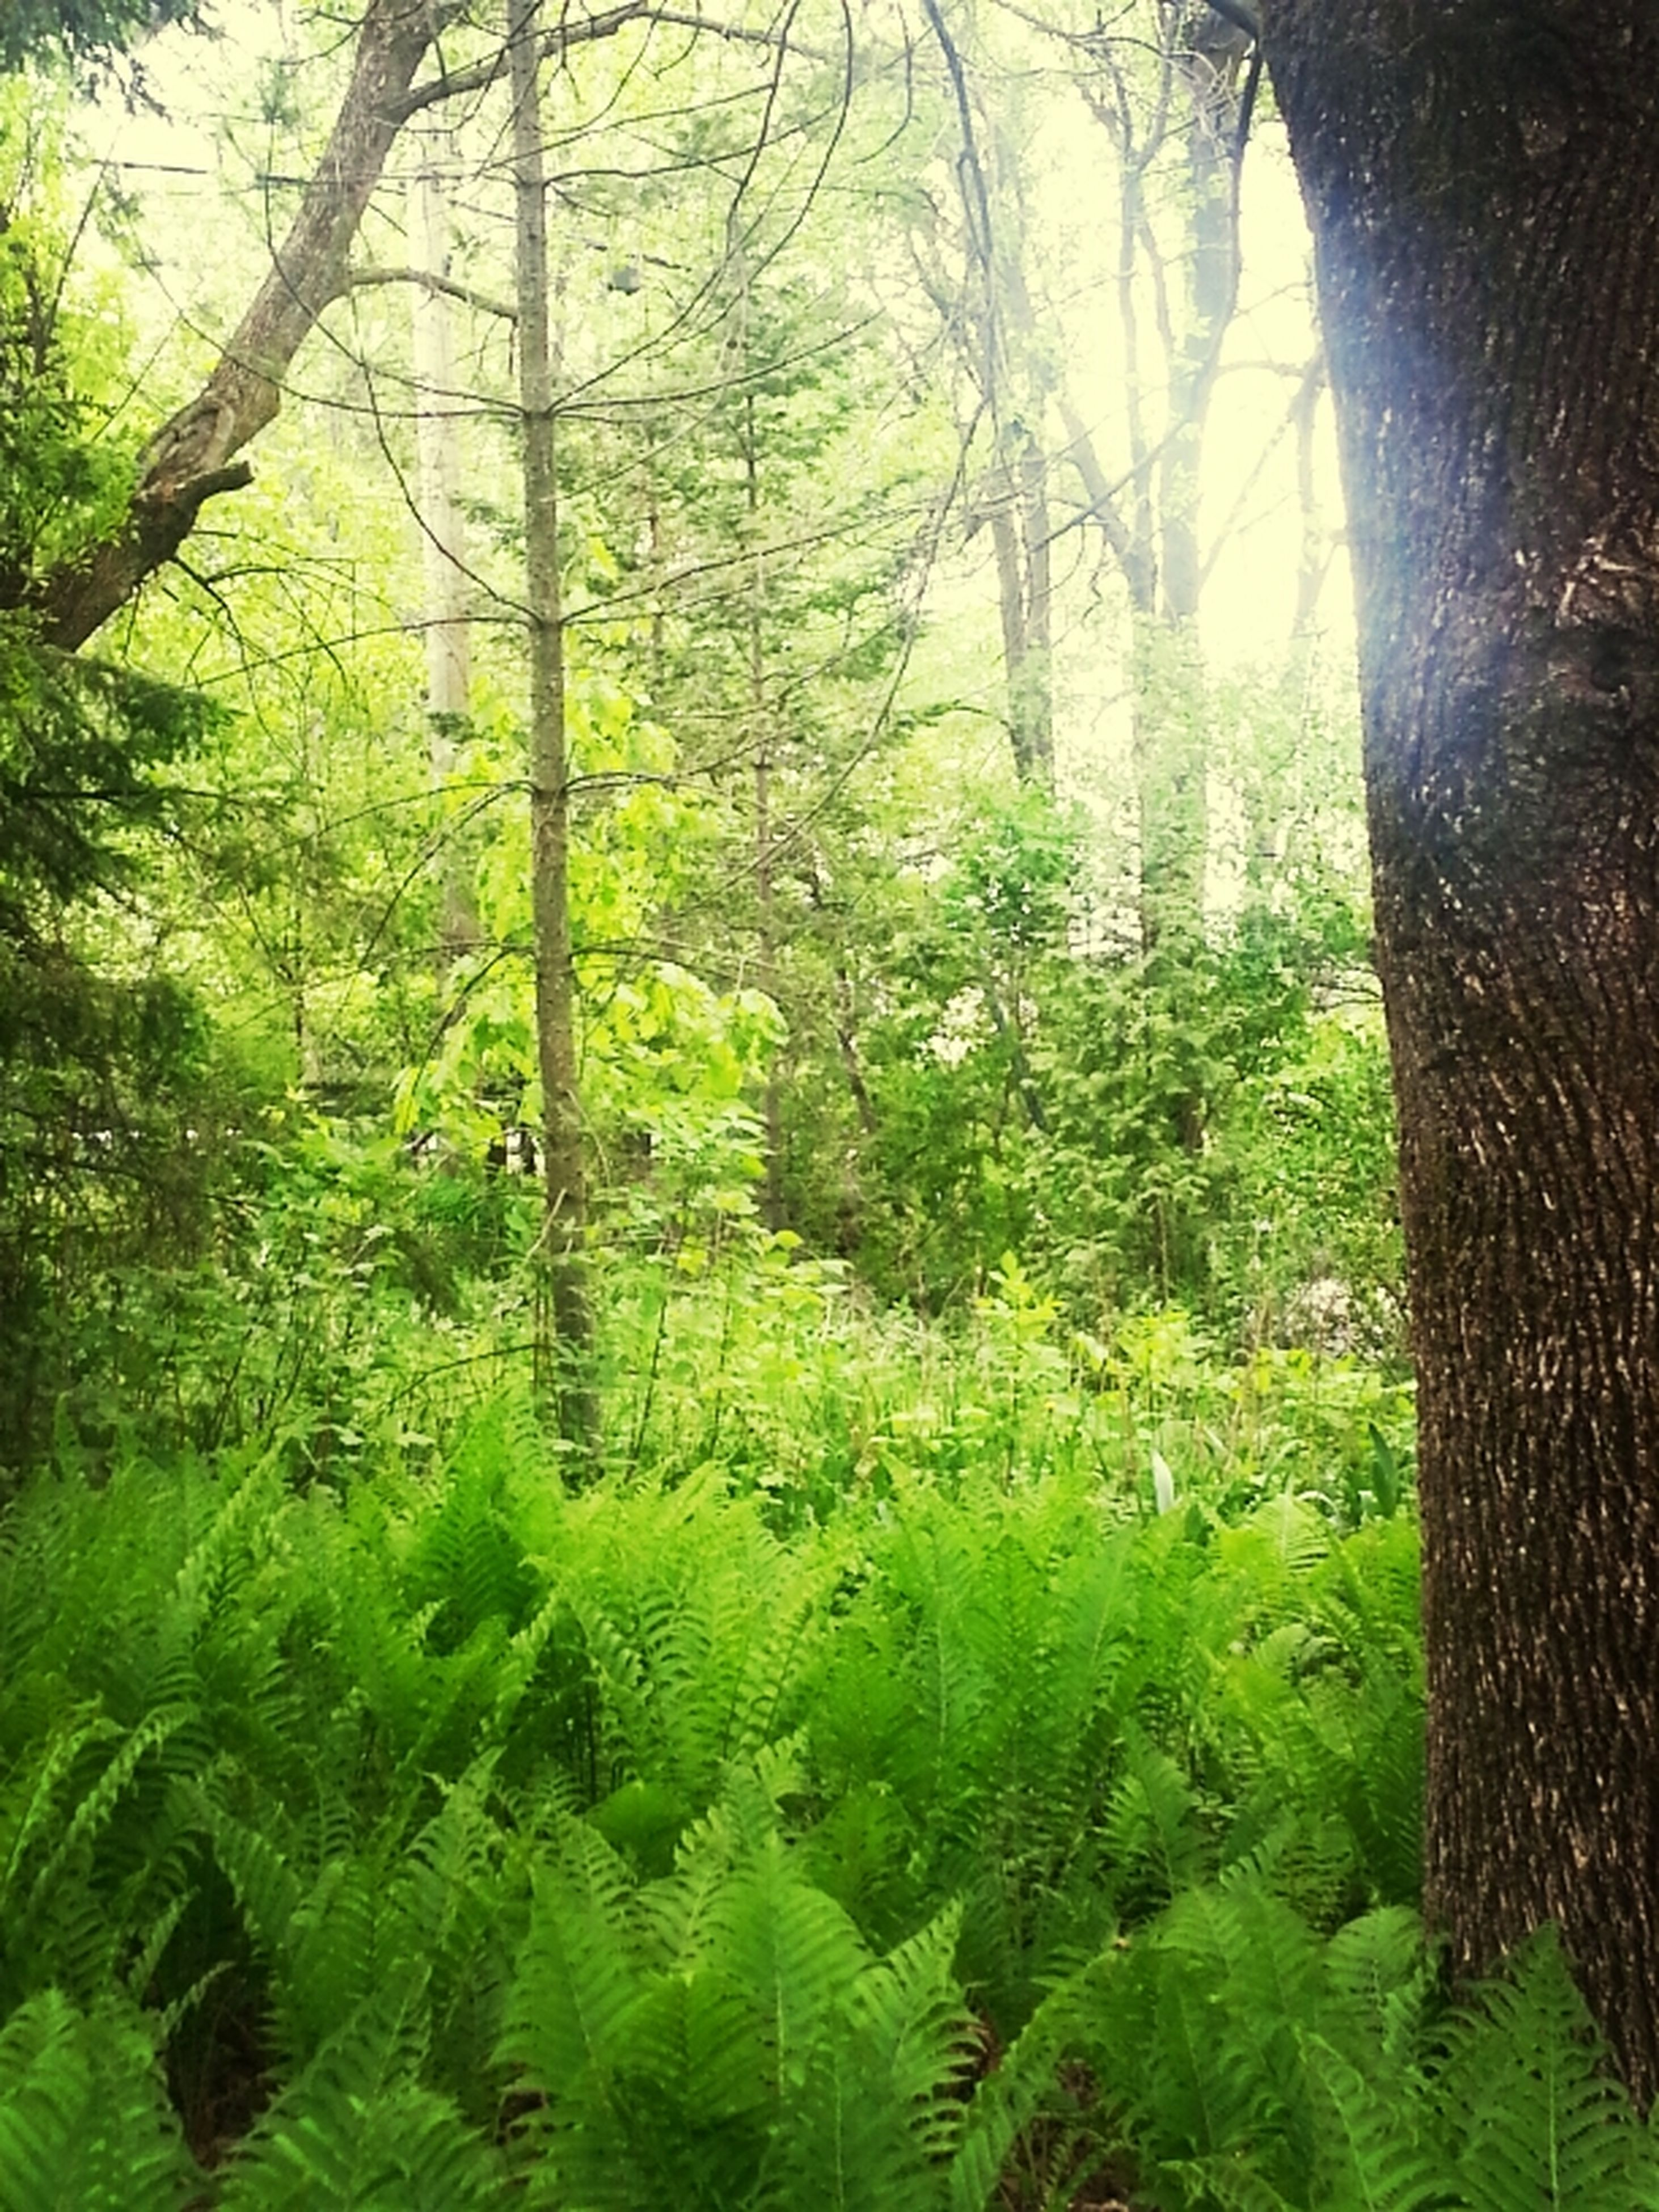 tree, growth, forest, tranquility, green color, tree trunk, sunlight, sunbeam, sun, nature, tranquil scene, beauty in nature, lens flare, woodland, scenics, branch, lush foliage, plant, day, leaf